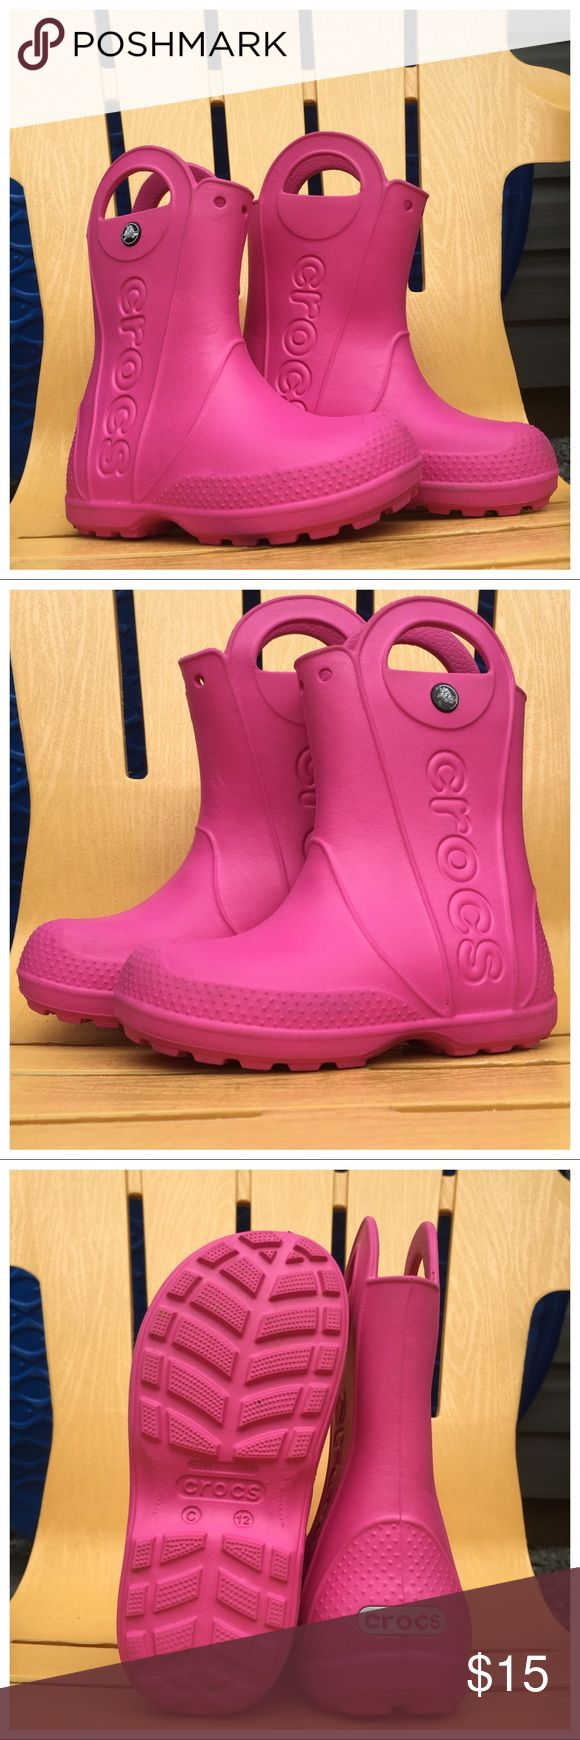 Crocs Handle It Pink Rain Boots Size 12 Even on the rainiest of days, kids can keep their feet looking cool. With the classic comfort of their favorite original Crocs, the Handle It Girls Rain Boot will keep their feet comfy and dry! Size 12 CROCS Shoes Rain & Snow Boots